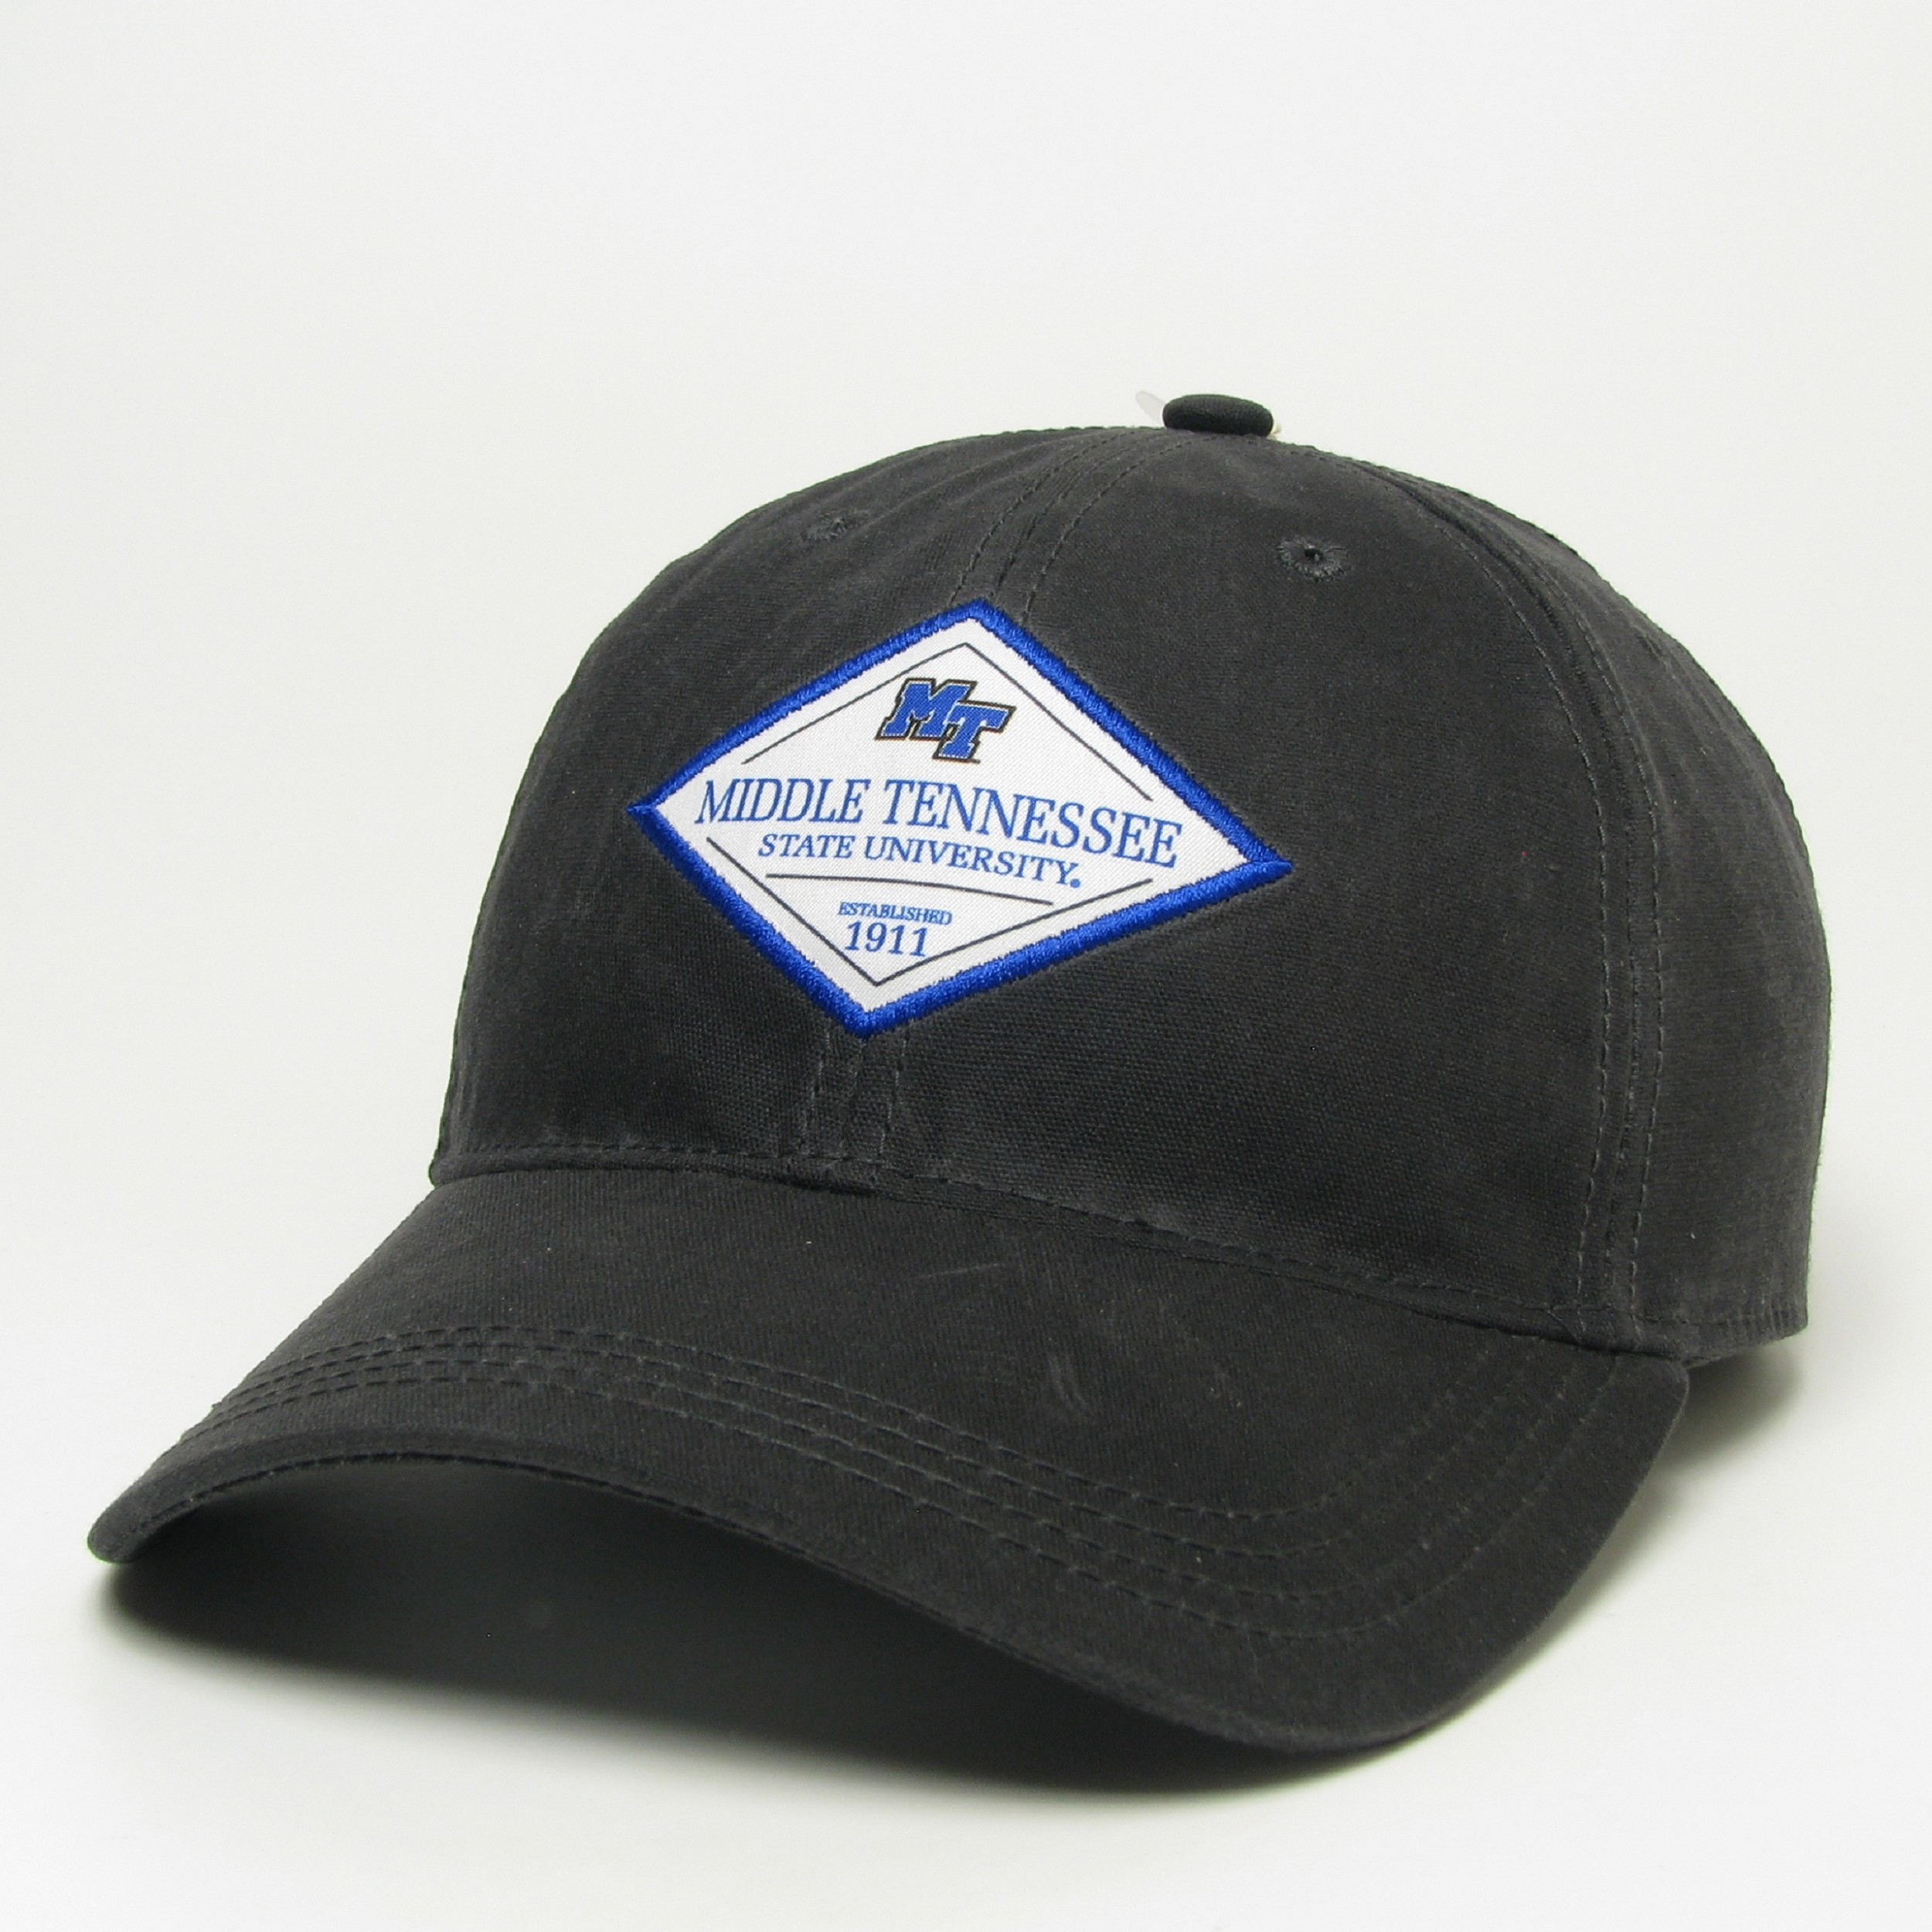 Middle Tennessee Est. 1911 Waxed Cotton Hat